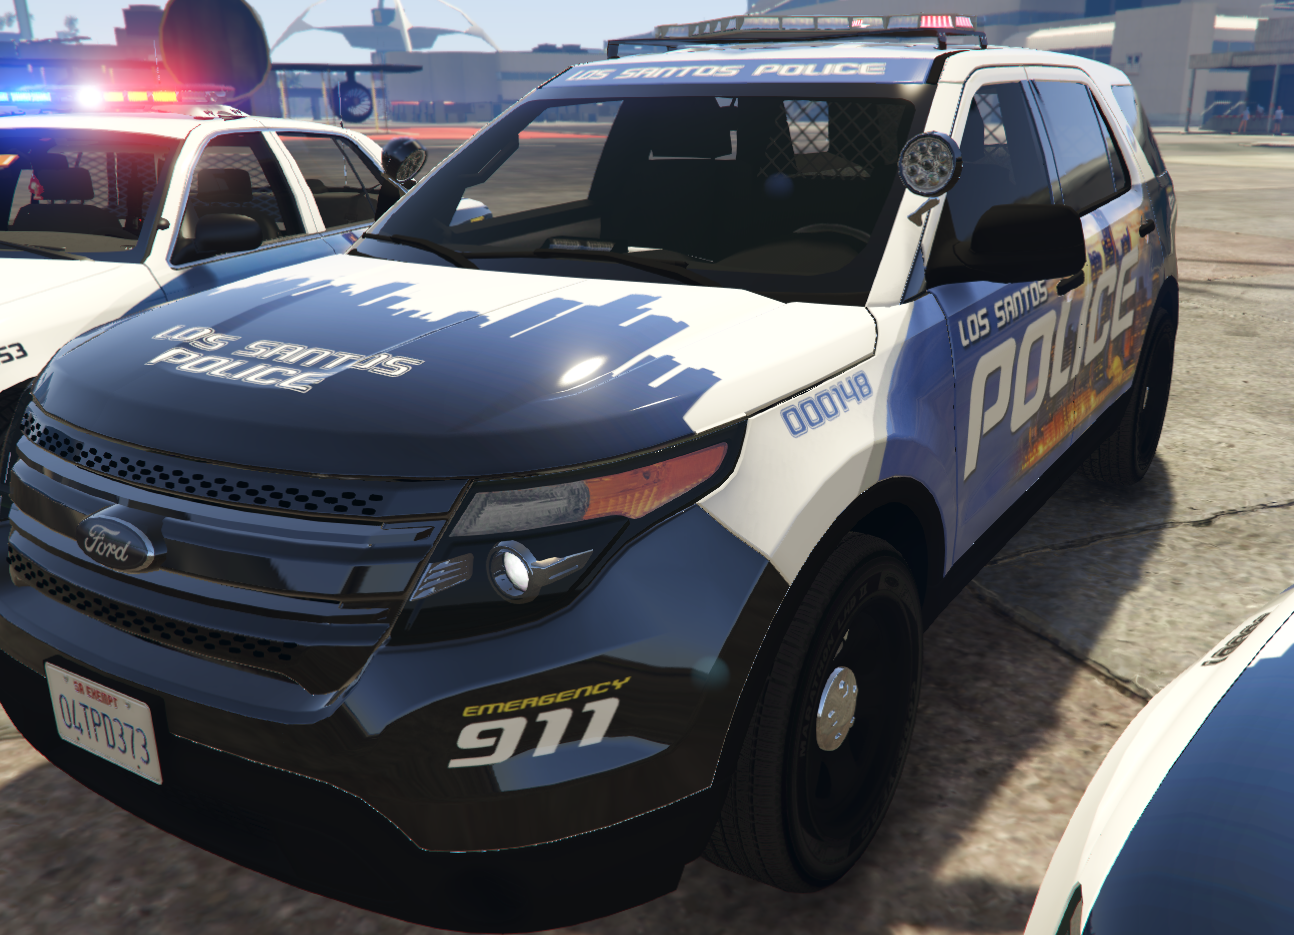 4k Detroit Style Fictional Lspd Livery Pack 14 Cars